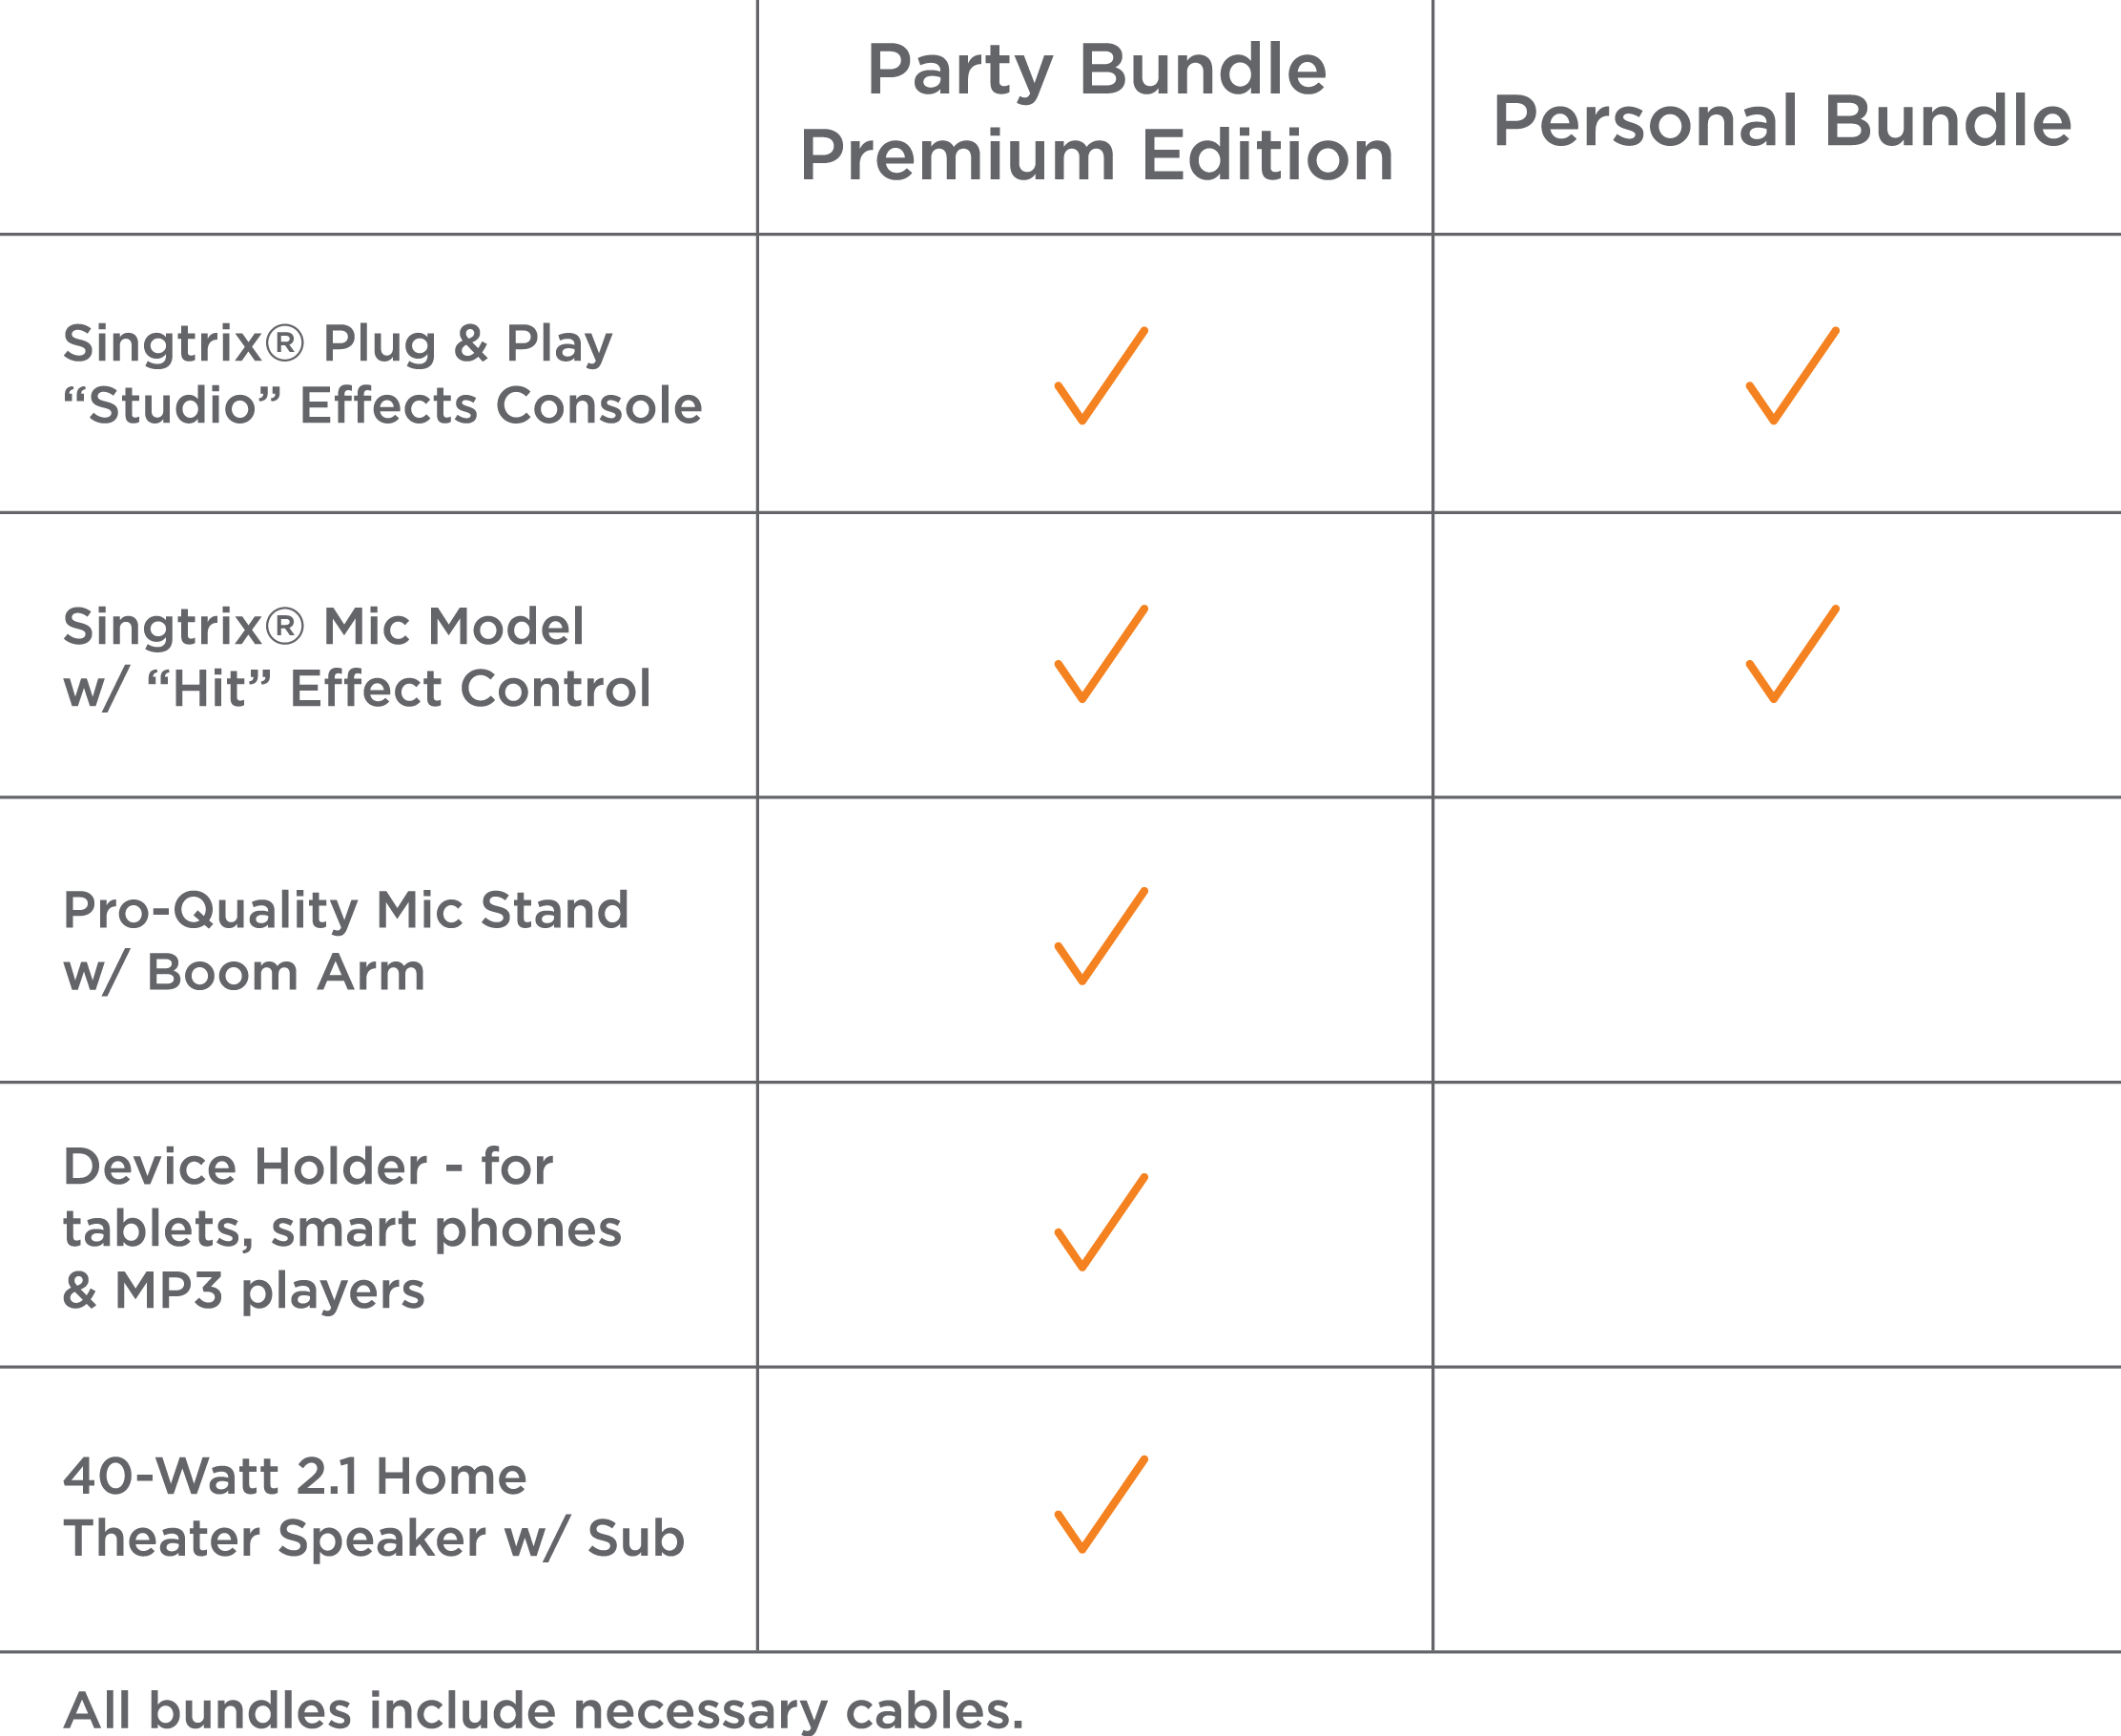 Bundles Comparison Chart